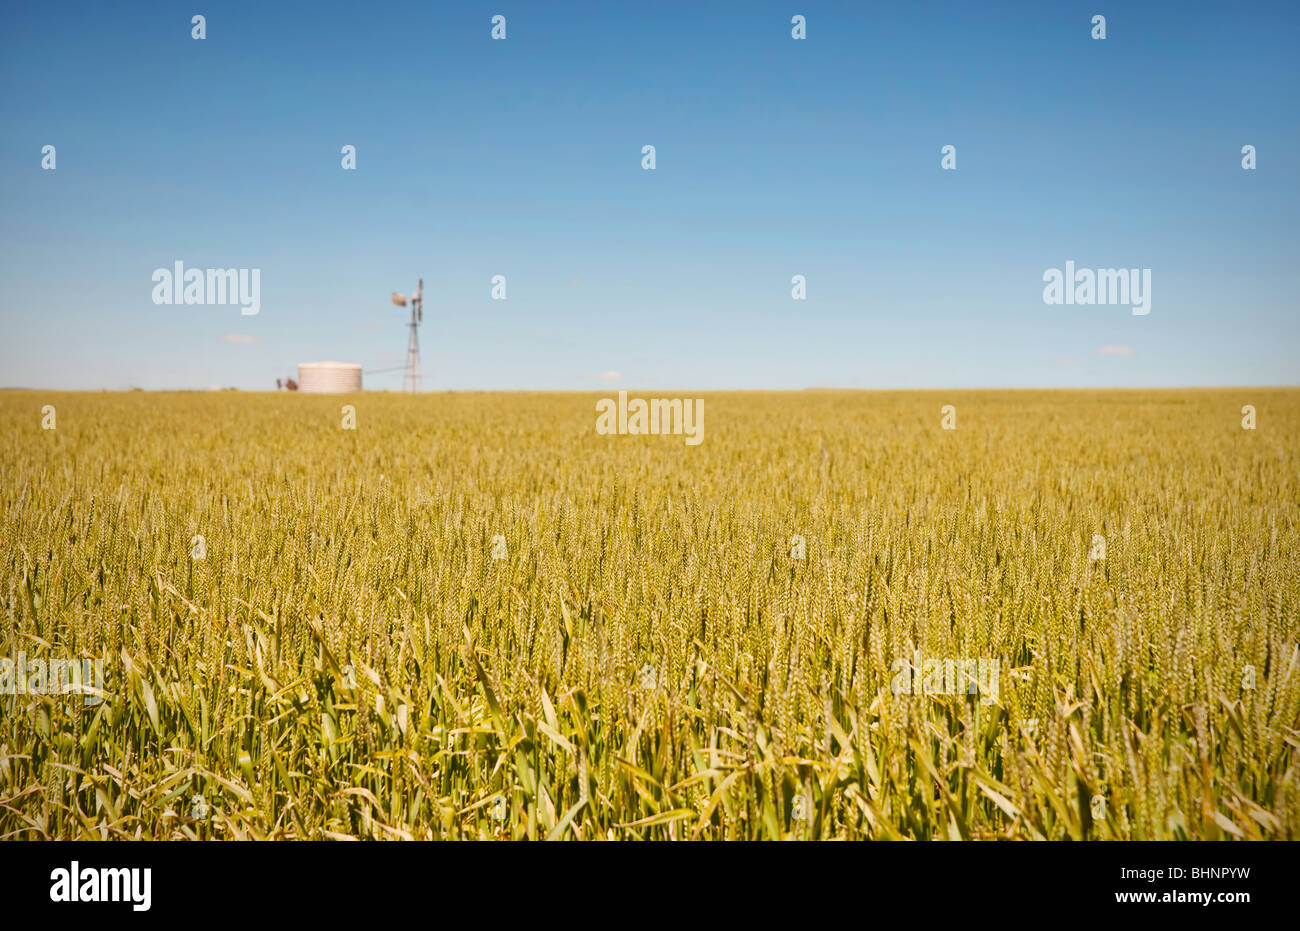 windmill in fields of wheat in the countryside at burra south australia - Stock Image